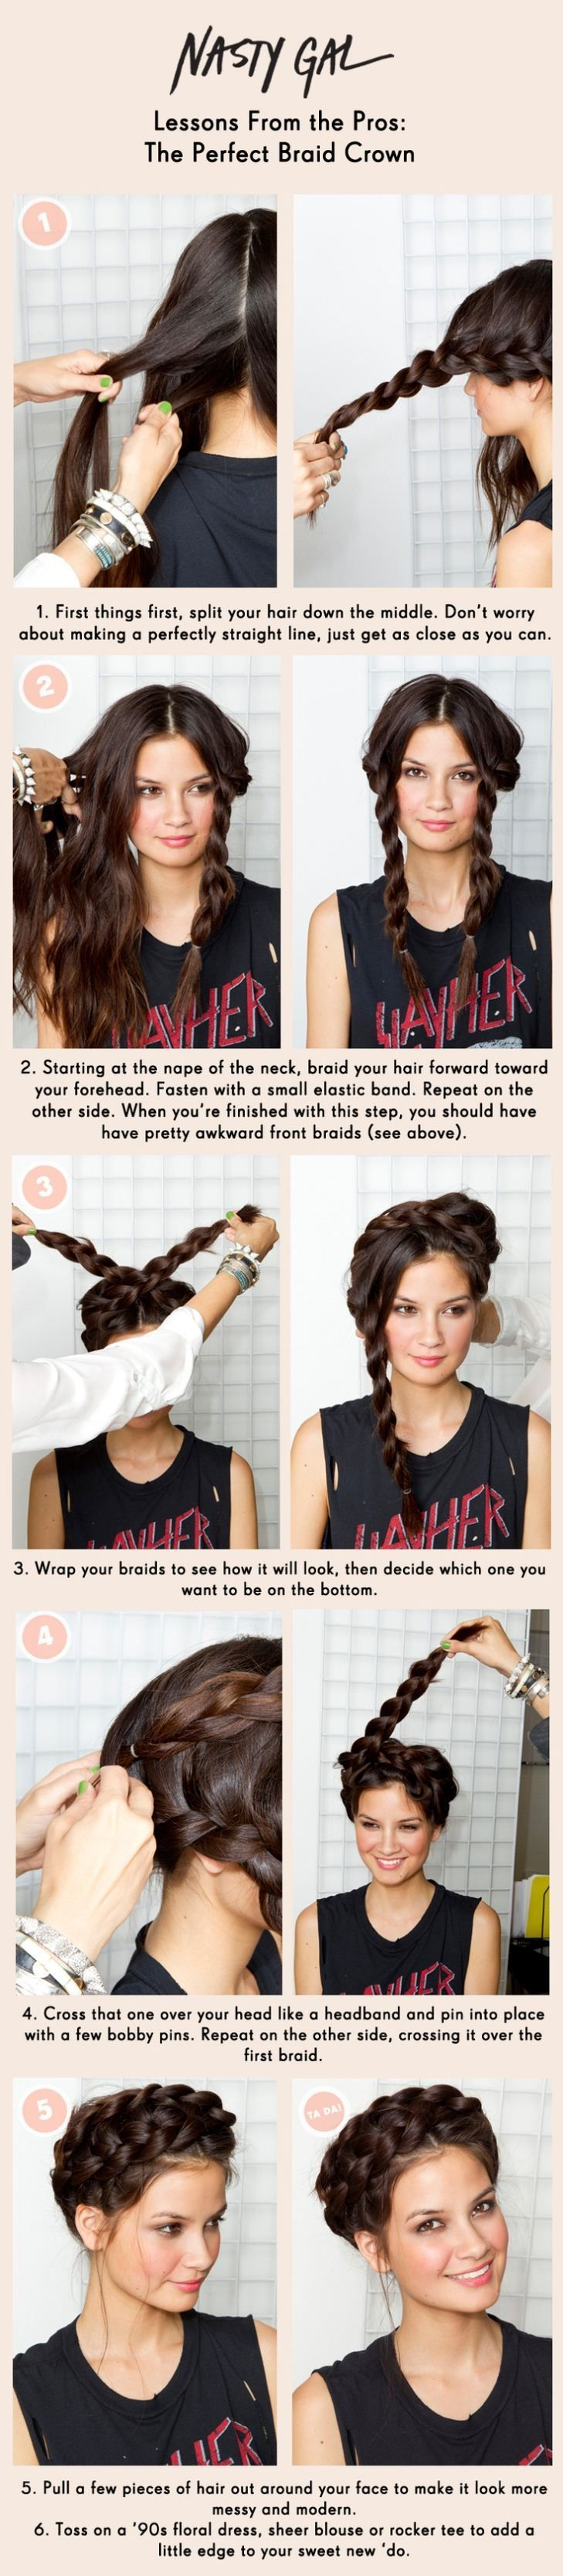 I Can't Do This With My Hair But Must Do It